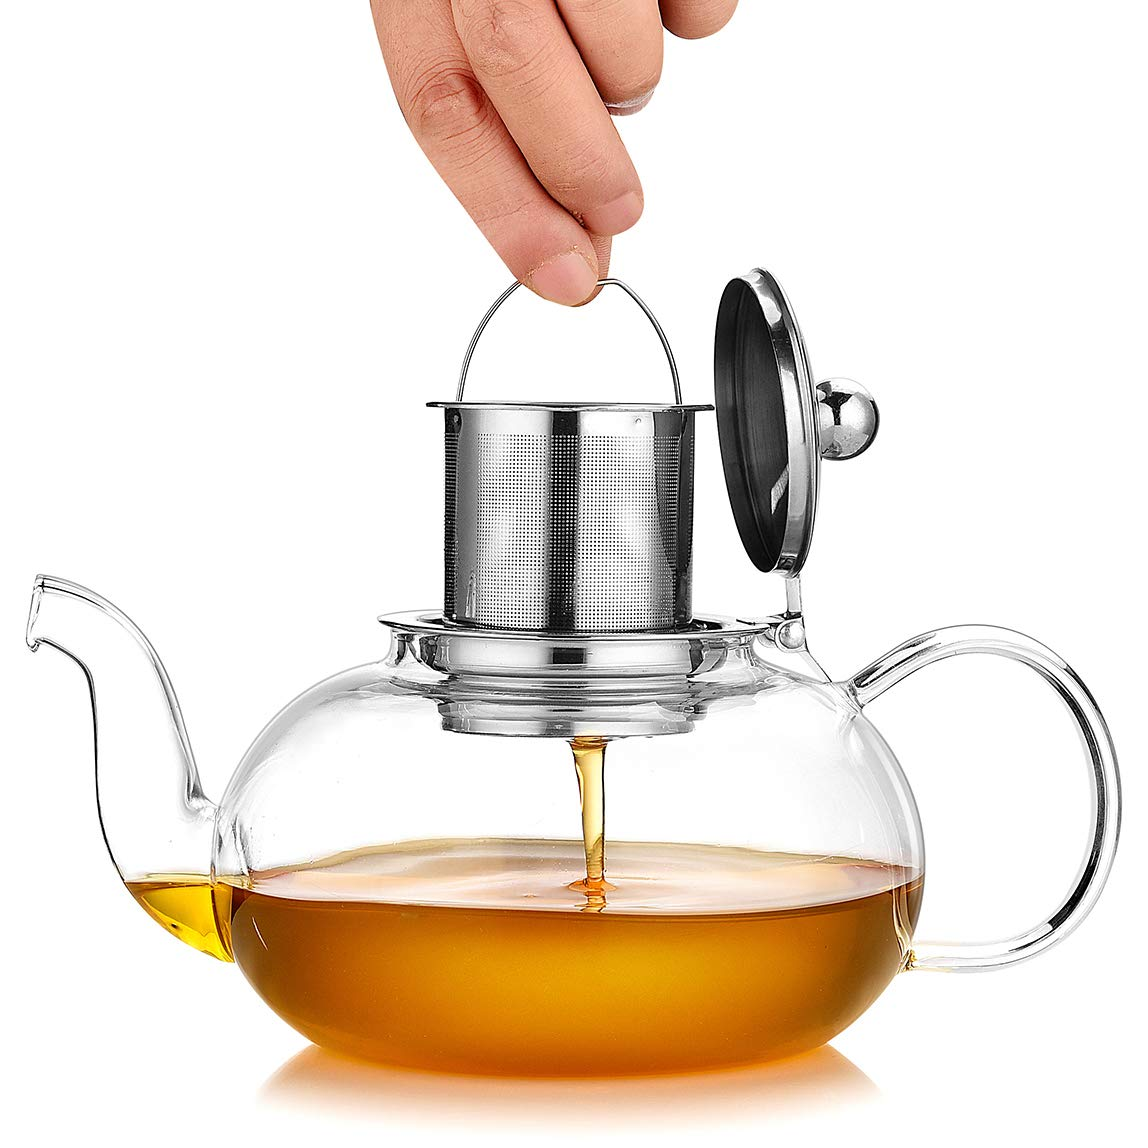 Artcome 1000ml / 34oz Glass Teapot with Removable Infuser, Stovetop Safe Teapot, Blooming and Loose Leaf Tea Pots by Artcome